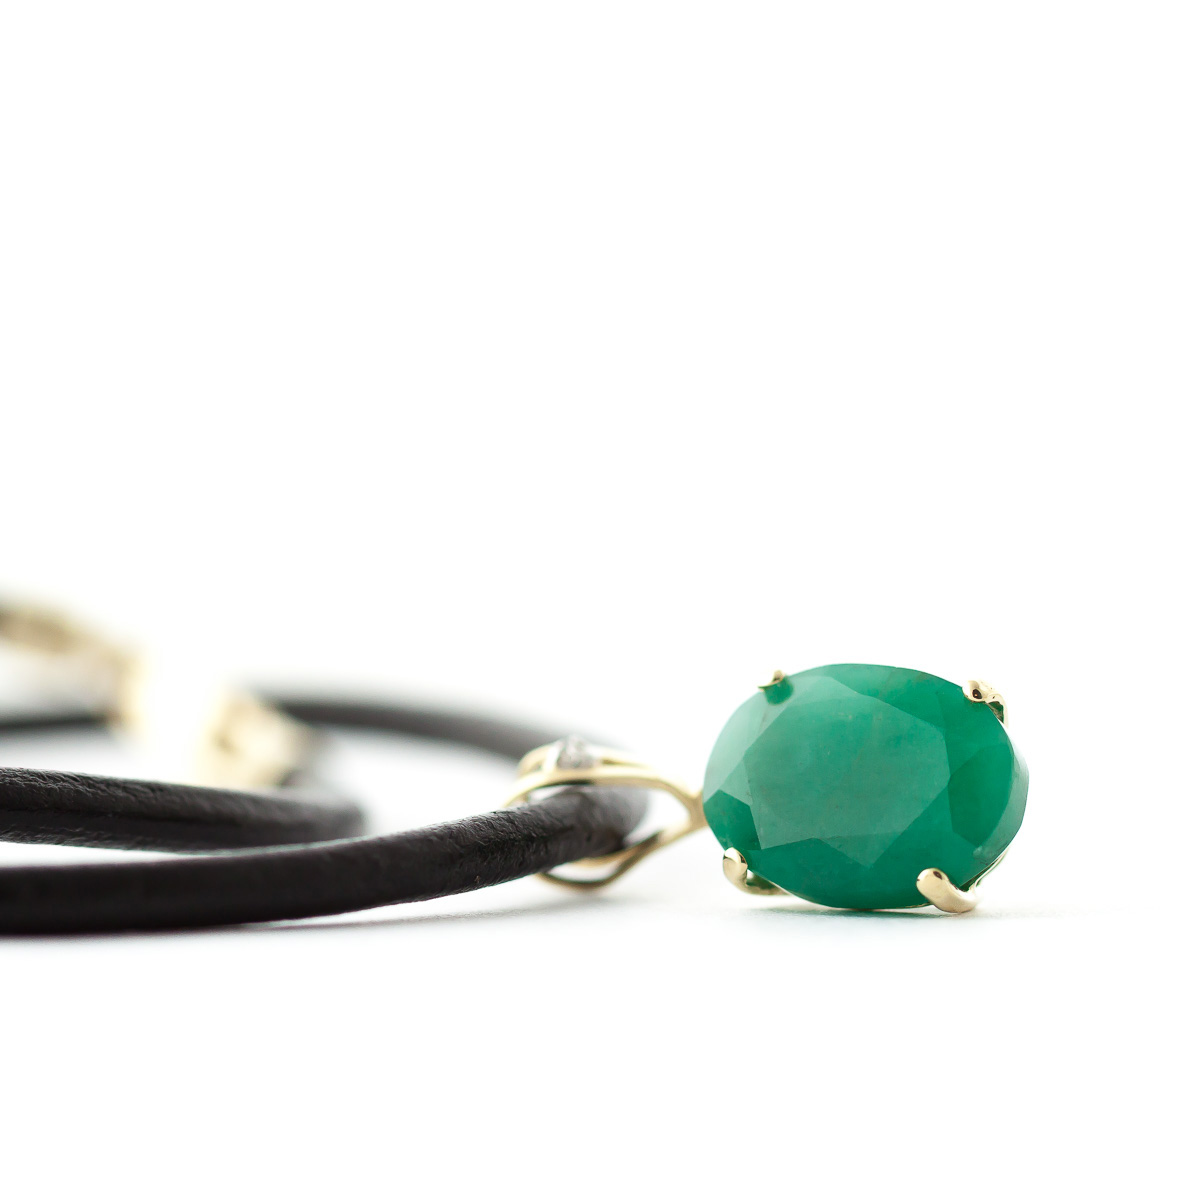 Emerald and Diamond Leather Pendant Necklace 6.5ct in 9ct Gold